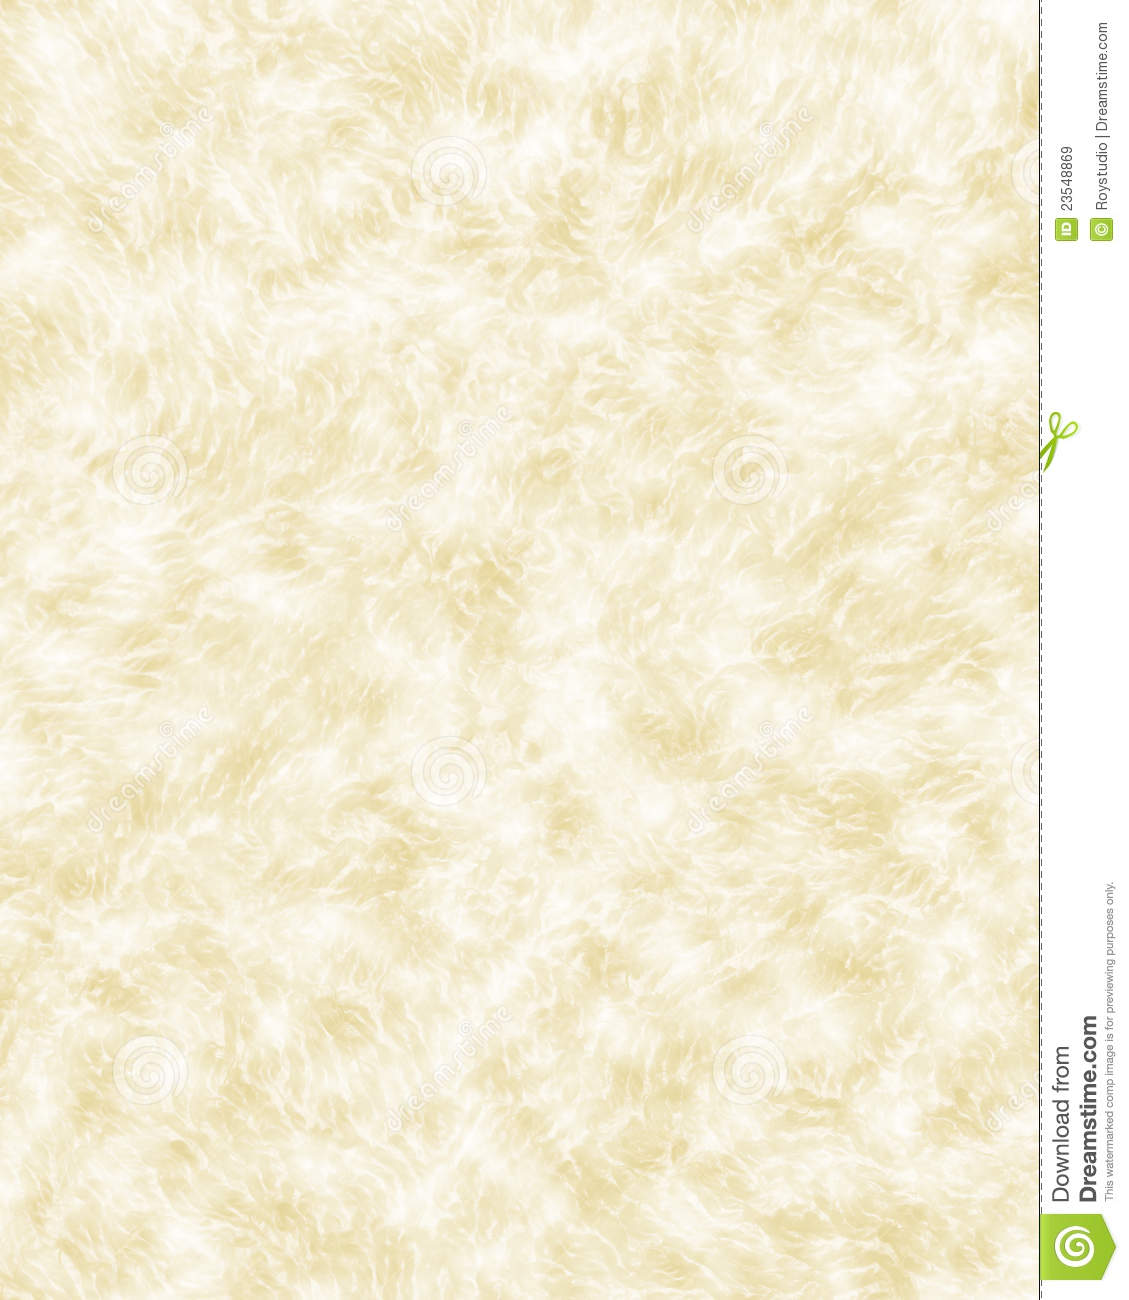 Black And White Polka Dot Wallpaper Border Beige Paper With Delicate Pattern Background Royalty Free